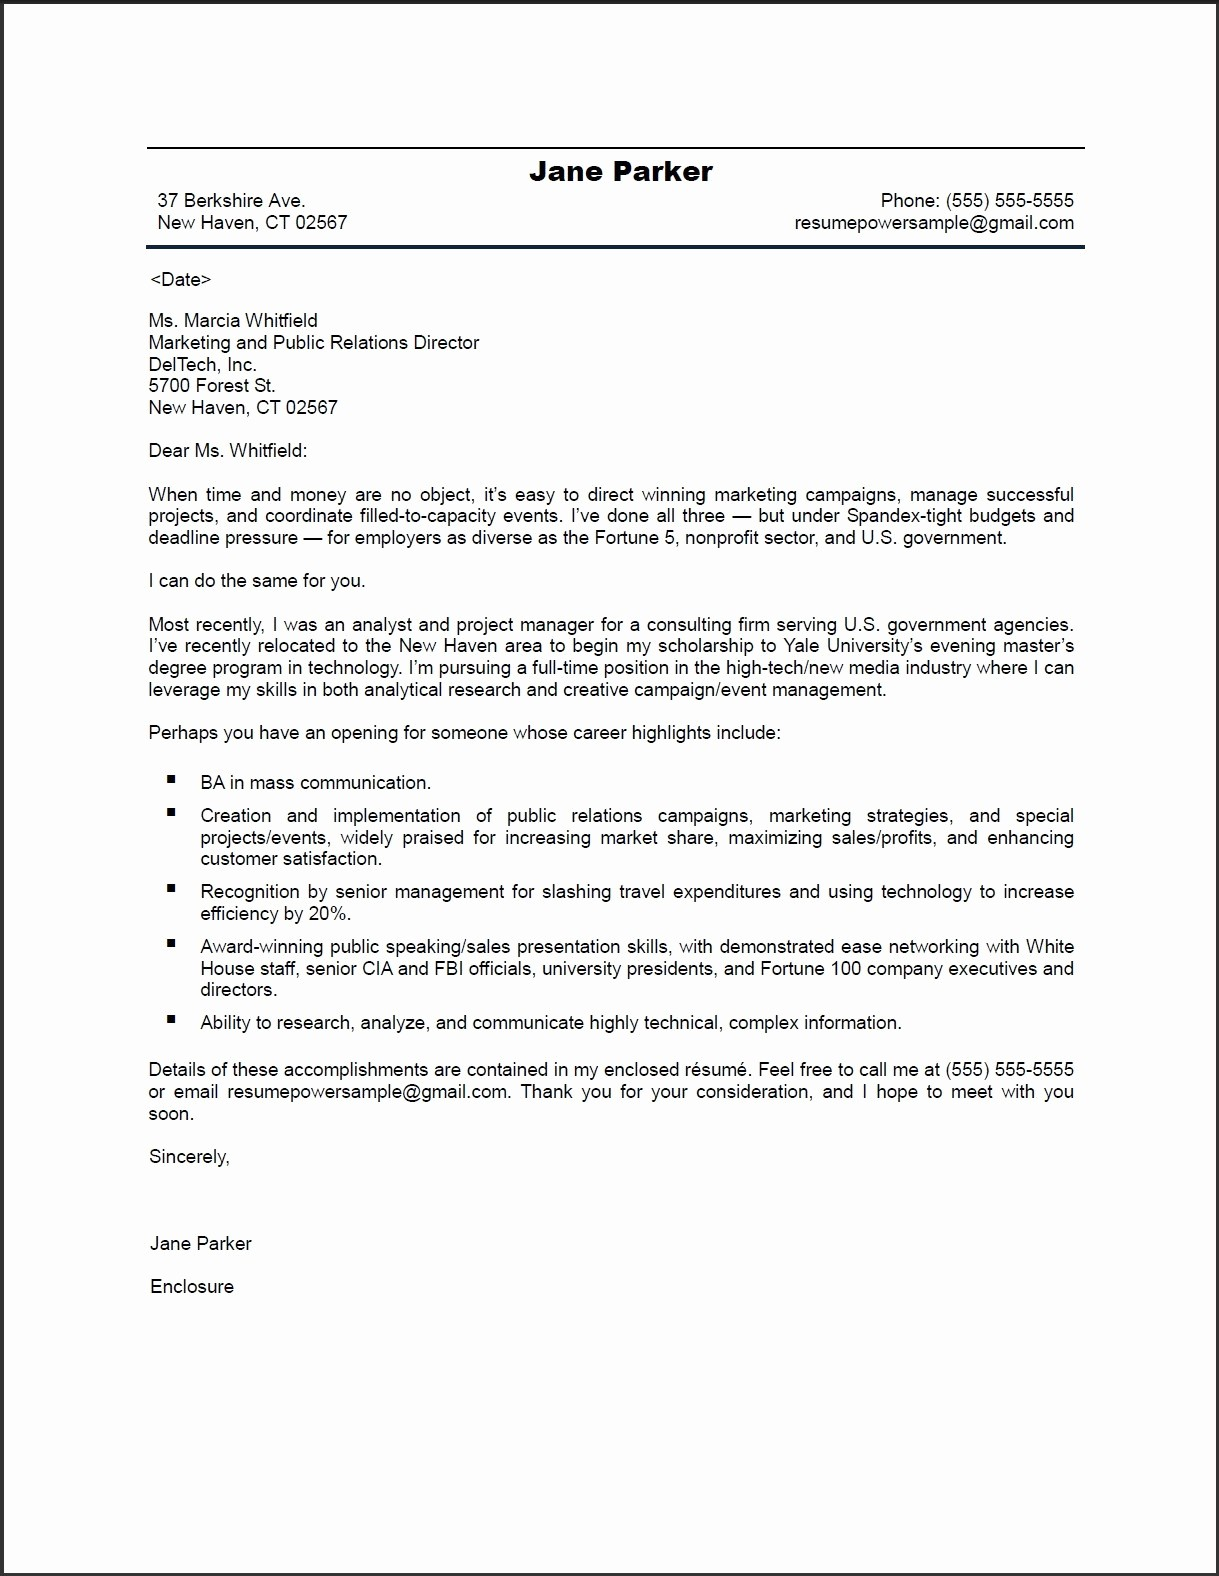 Cover Page for Resume Template Inspirational Resume Template Microsoft Fice Fax Cover Sheet In Word